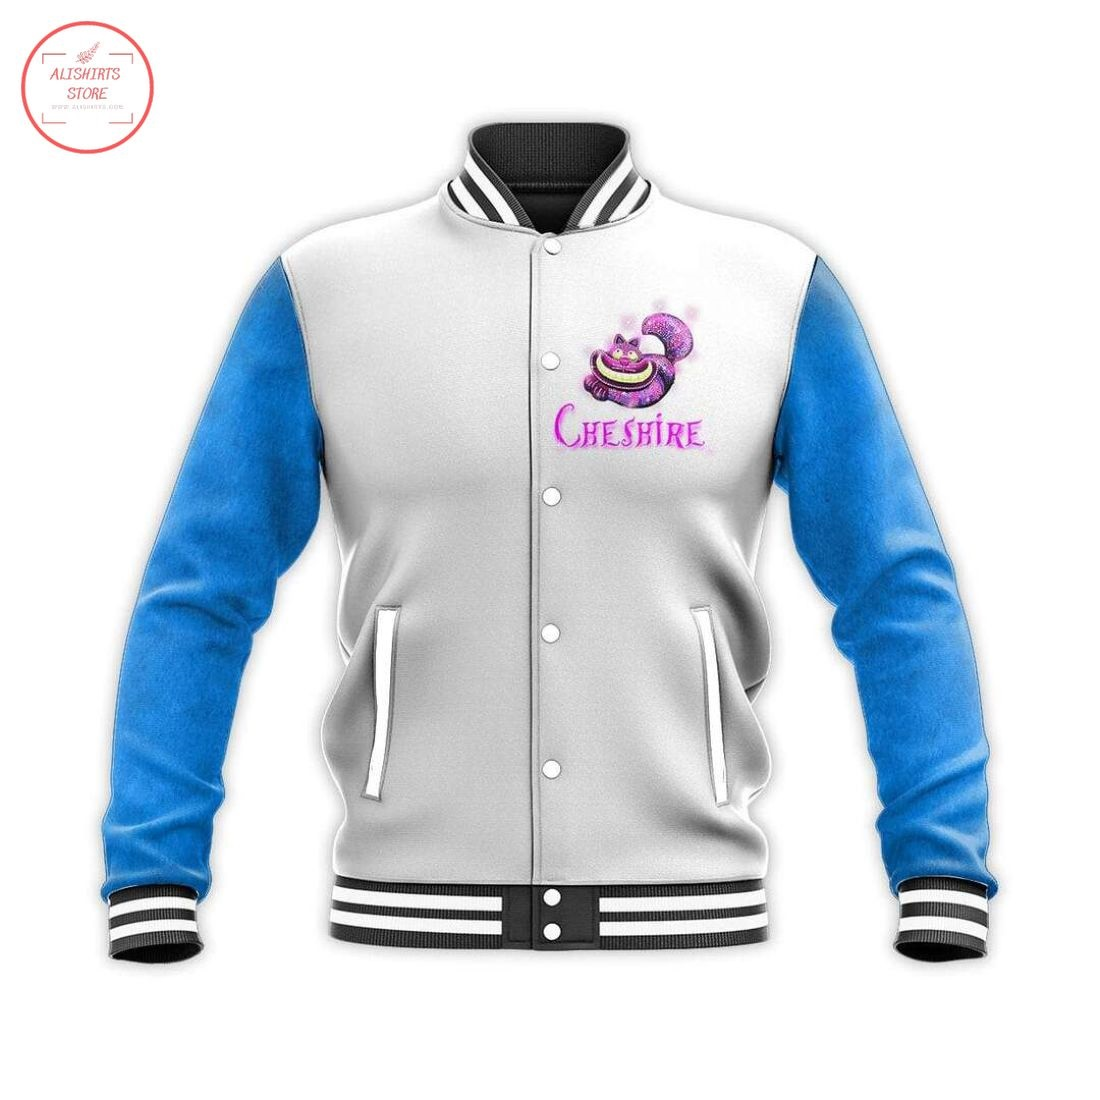 The Cheshire Mad Cat Letterman Jacket